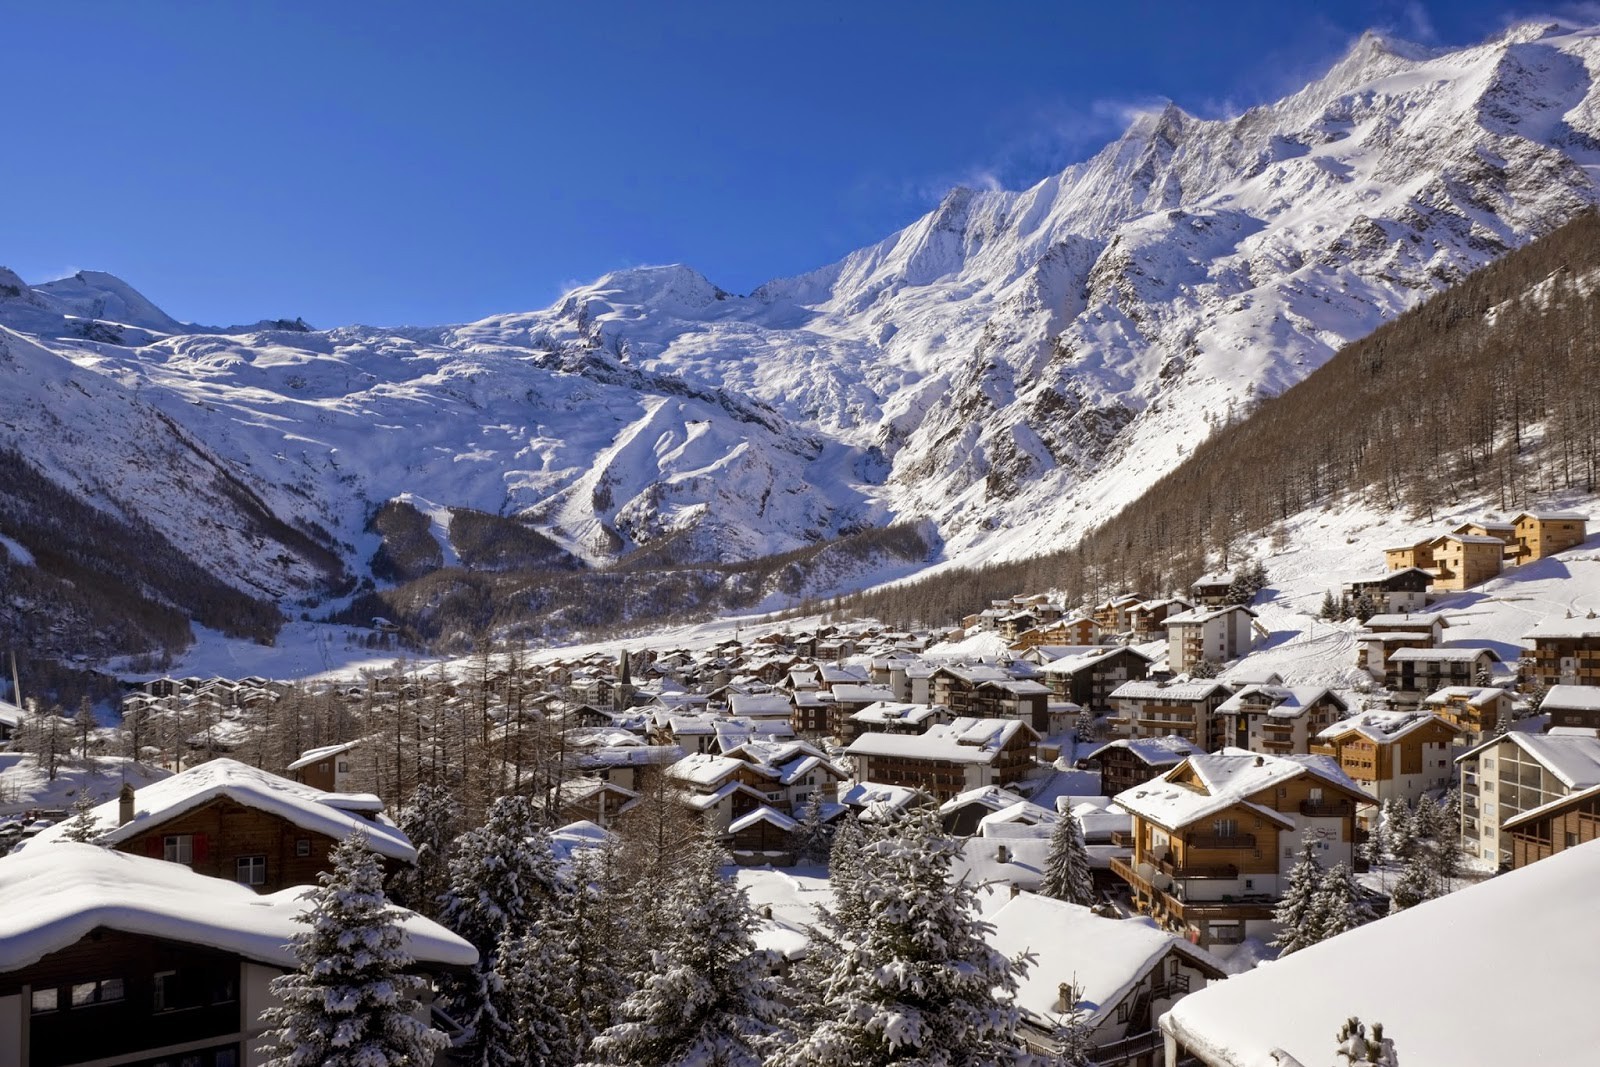 Alpine ski resorts plagued by lack of snow - Alpine Ski Resorts Plagued By Lack Of Snow 30